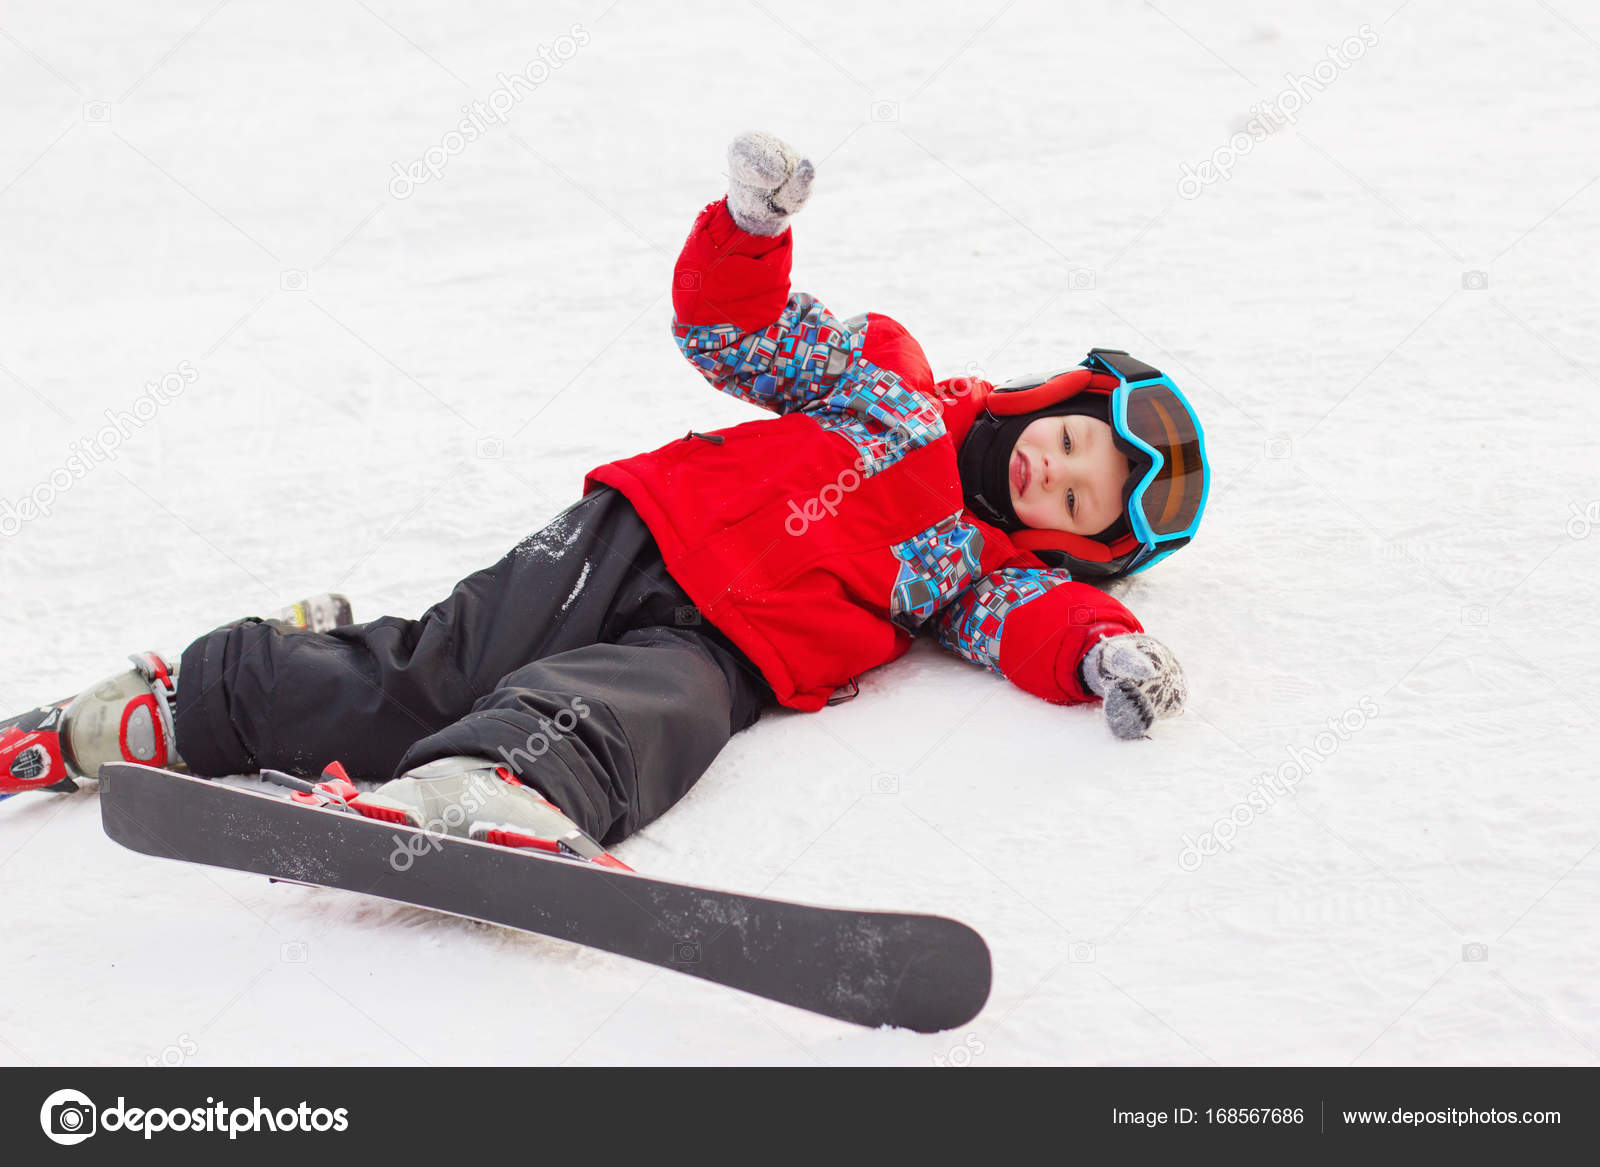 7dbdb65725d9 Little cute boy with skis and a ski outfit. Little skier in the ...